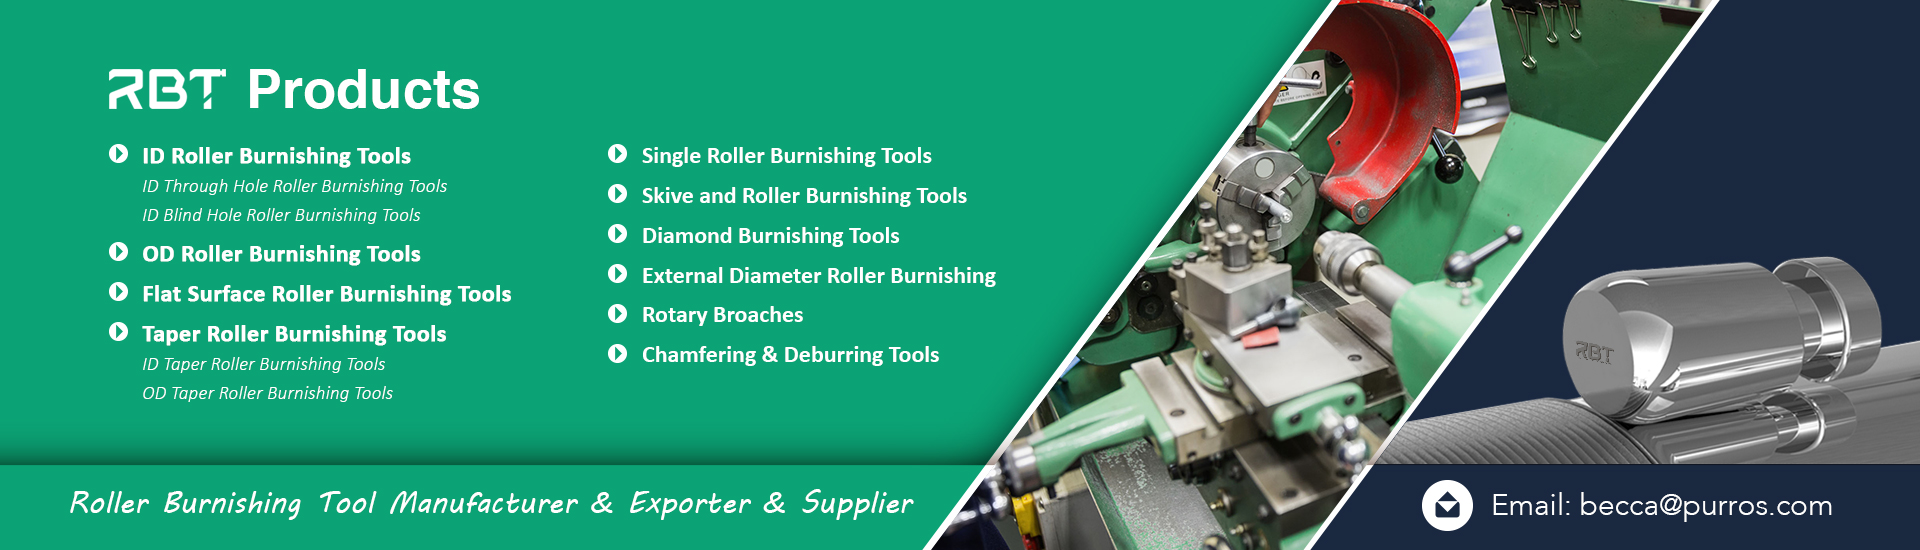 Roller Burnishing Tools, Roller Burnishing Tools Manufacturer, Roller Burnishing Tools Exporter, Roller Burnishing Tools Supplier, Roller Burnishing Tools Trader,Application advantages of Roller Burnishing Tools, Roller Burnishing Tools advantages